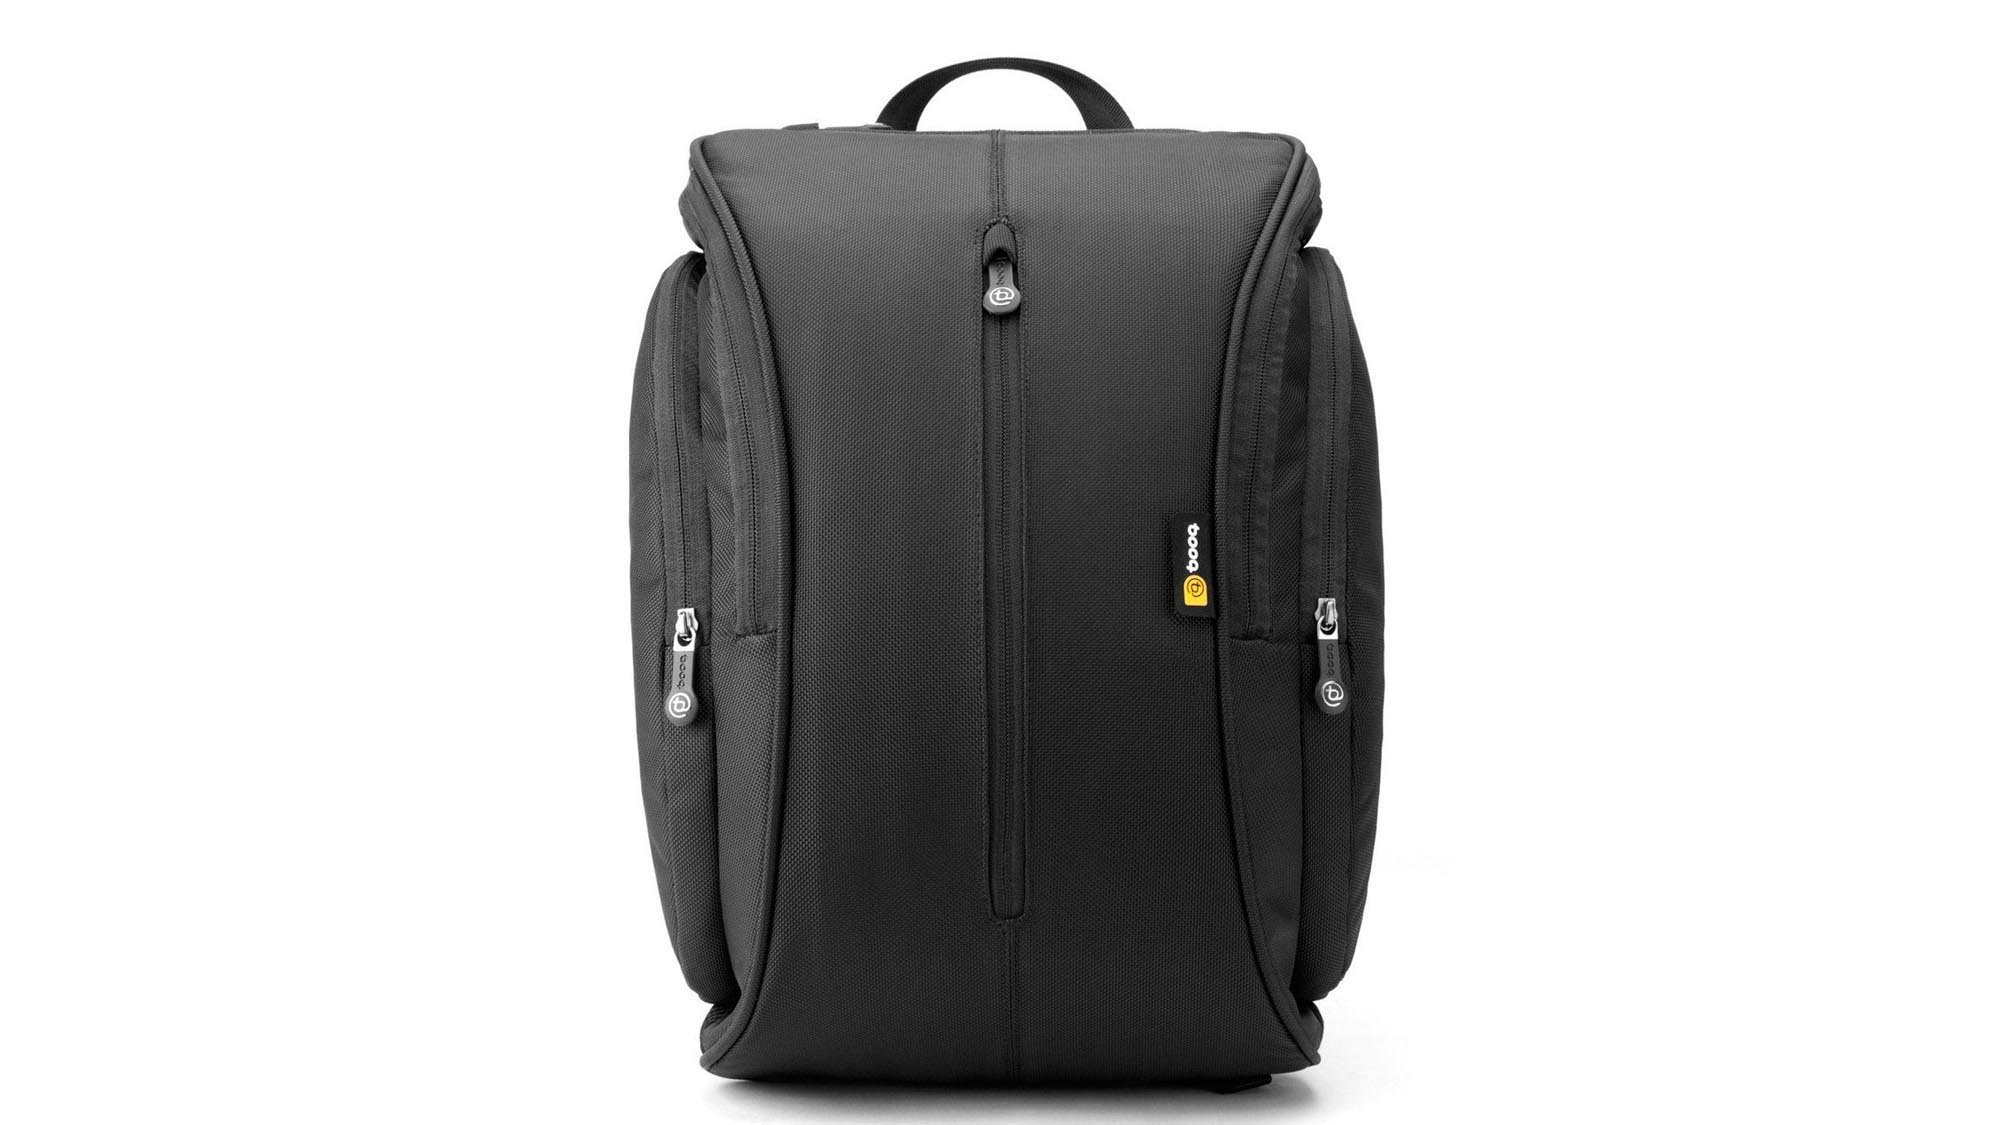 eb6b7e7f9b98 Best laptop bag 2019: The best laptop backpacks, sleeves, cases and ...